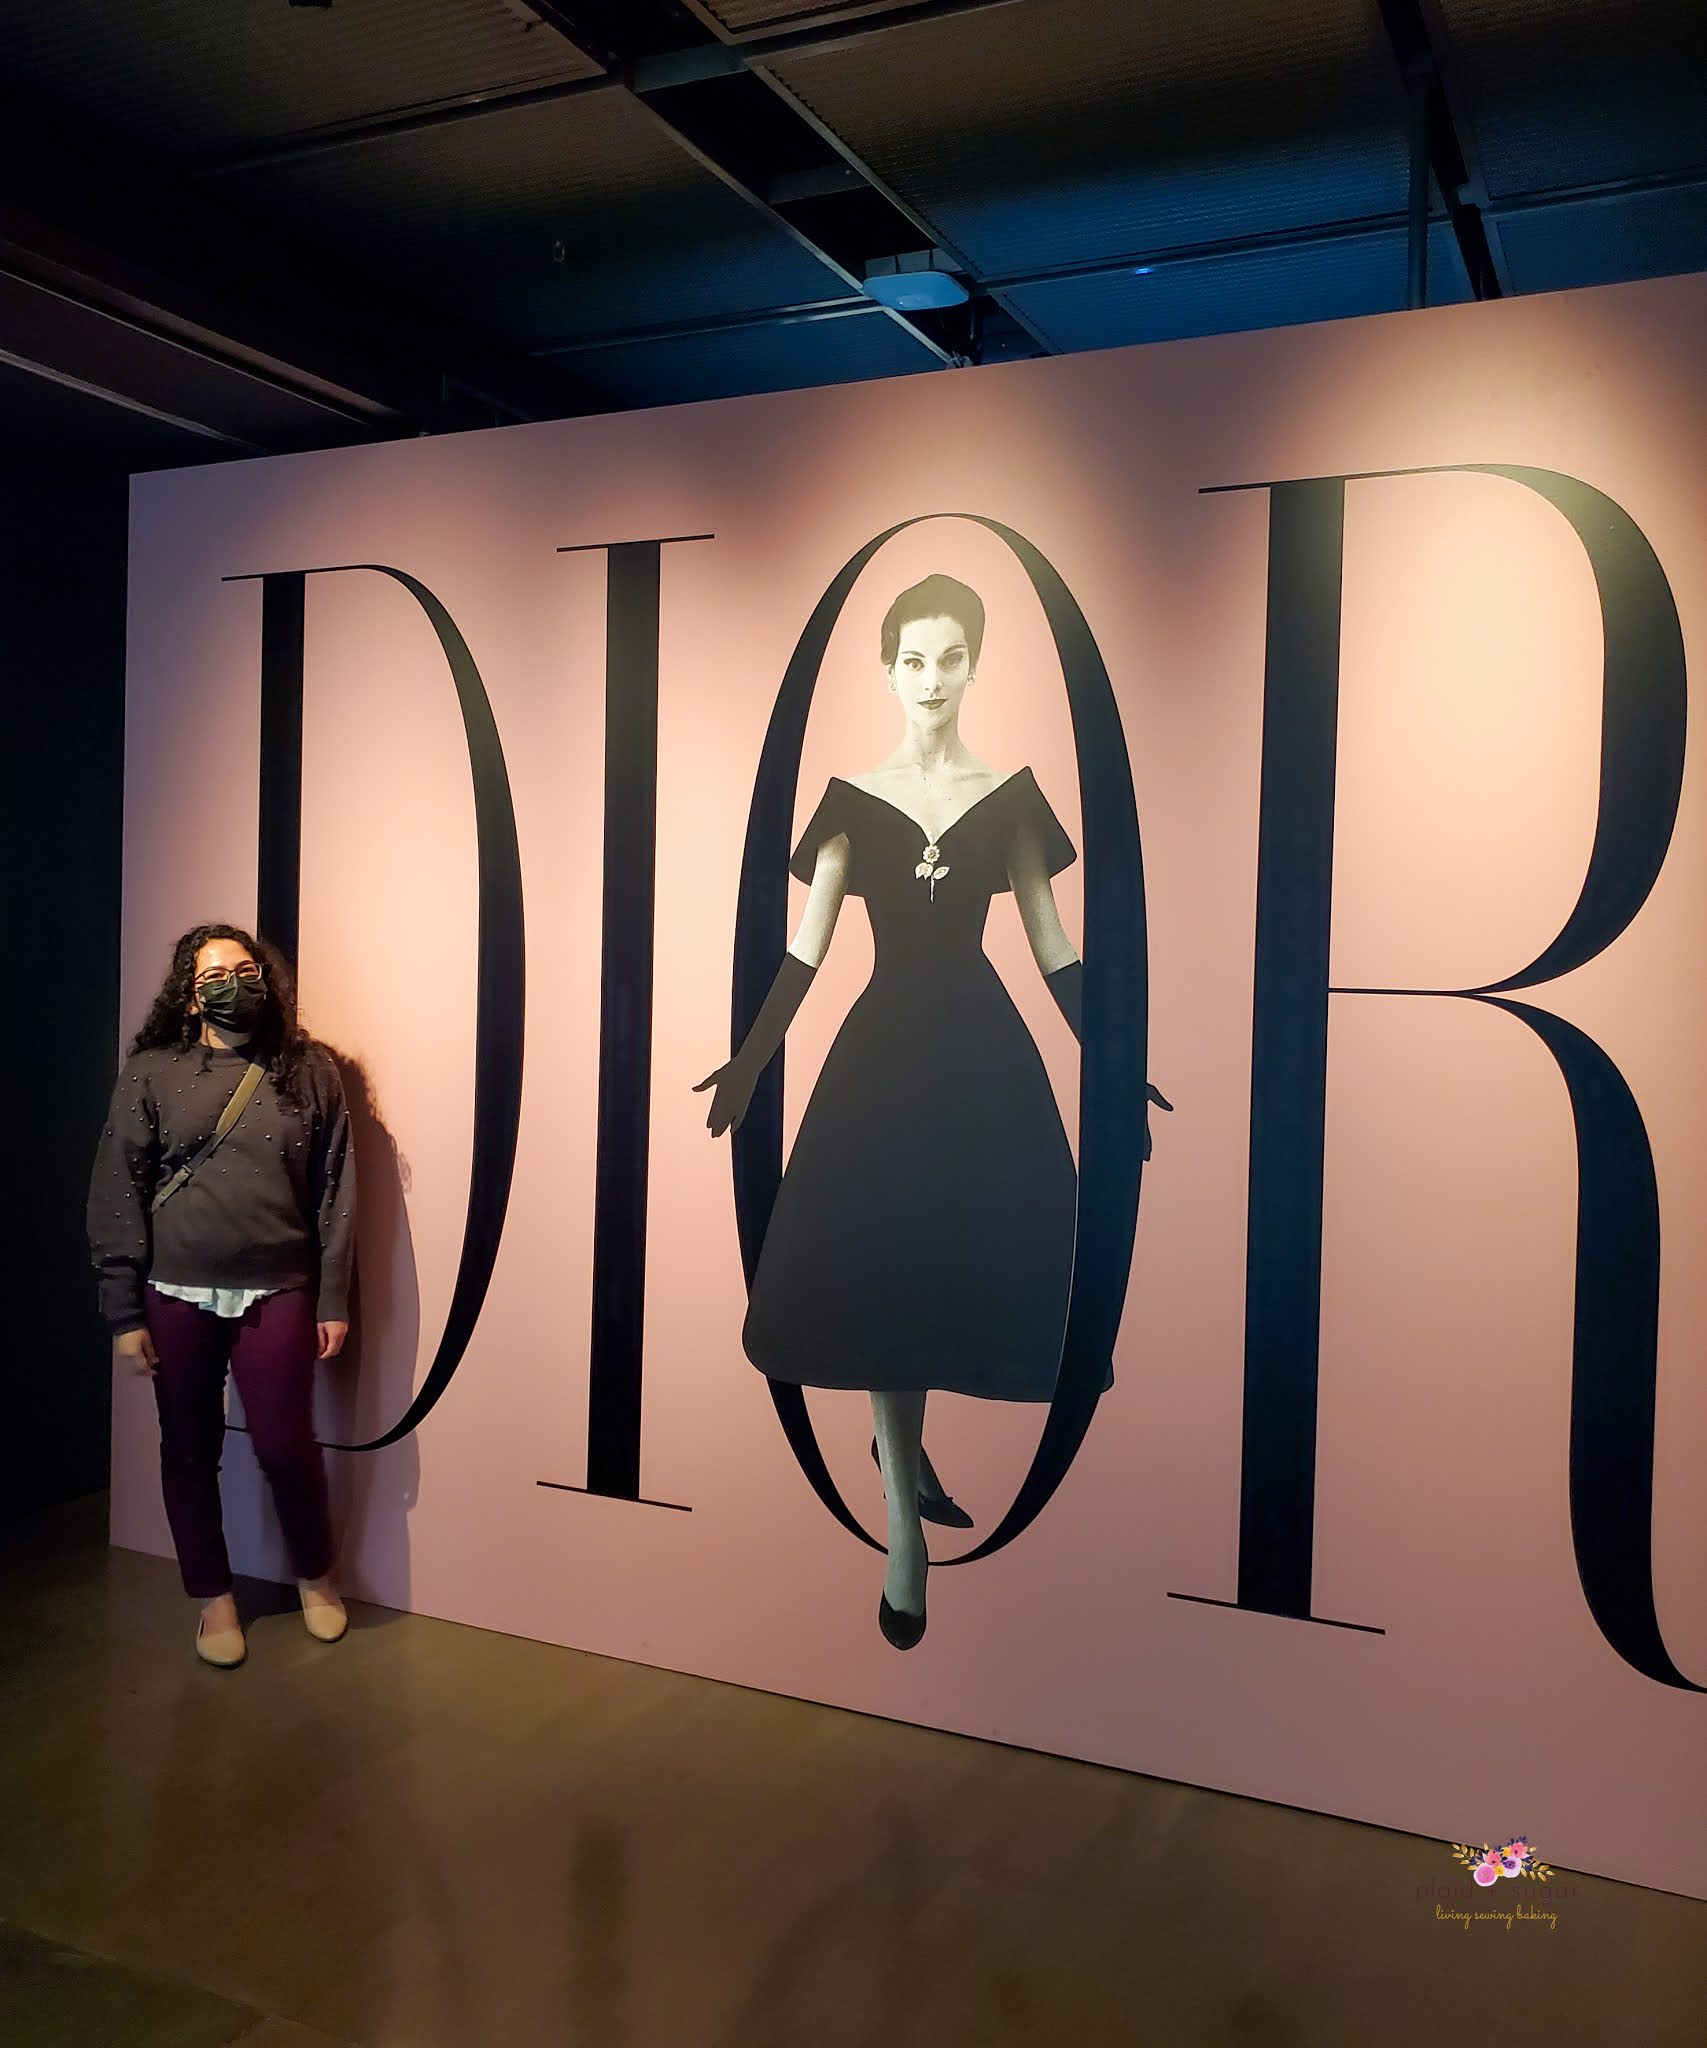 Visiting and gazing at original house of Dior garments at an exhibit in Montreal